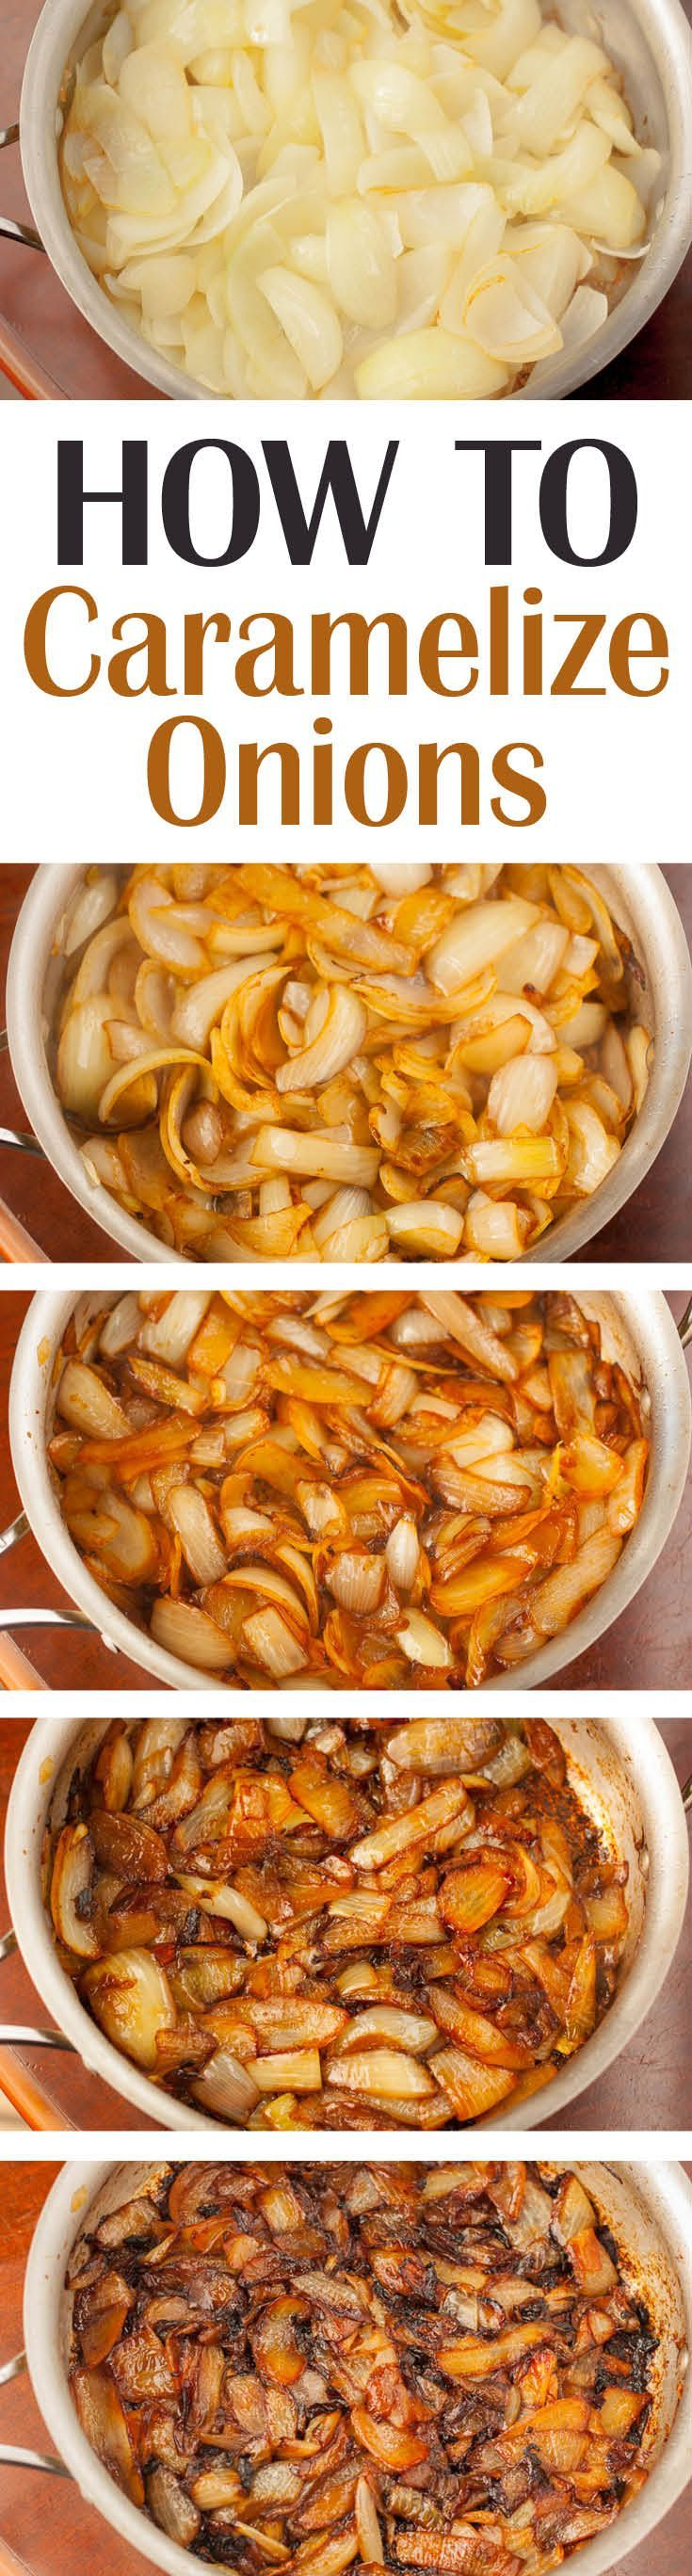 Learn how to caramelize onions from Plating Pixels. An Ultimate Guide to Caramelized Onions. Science of why they become sweet and browned. Easy detailed step-by-step photos and instructions for perfect caramelized onions. - www.platingpixels.com